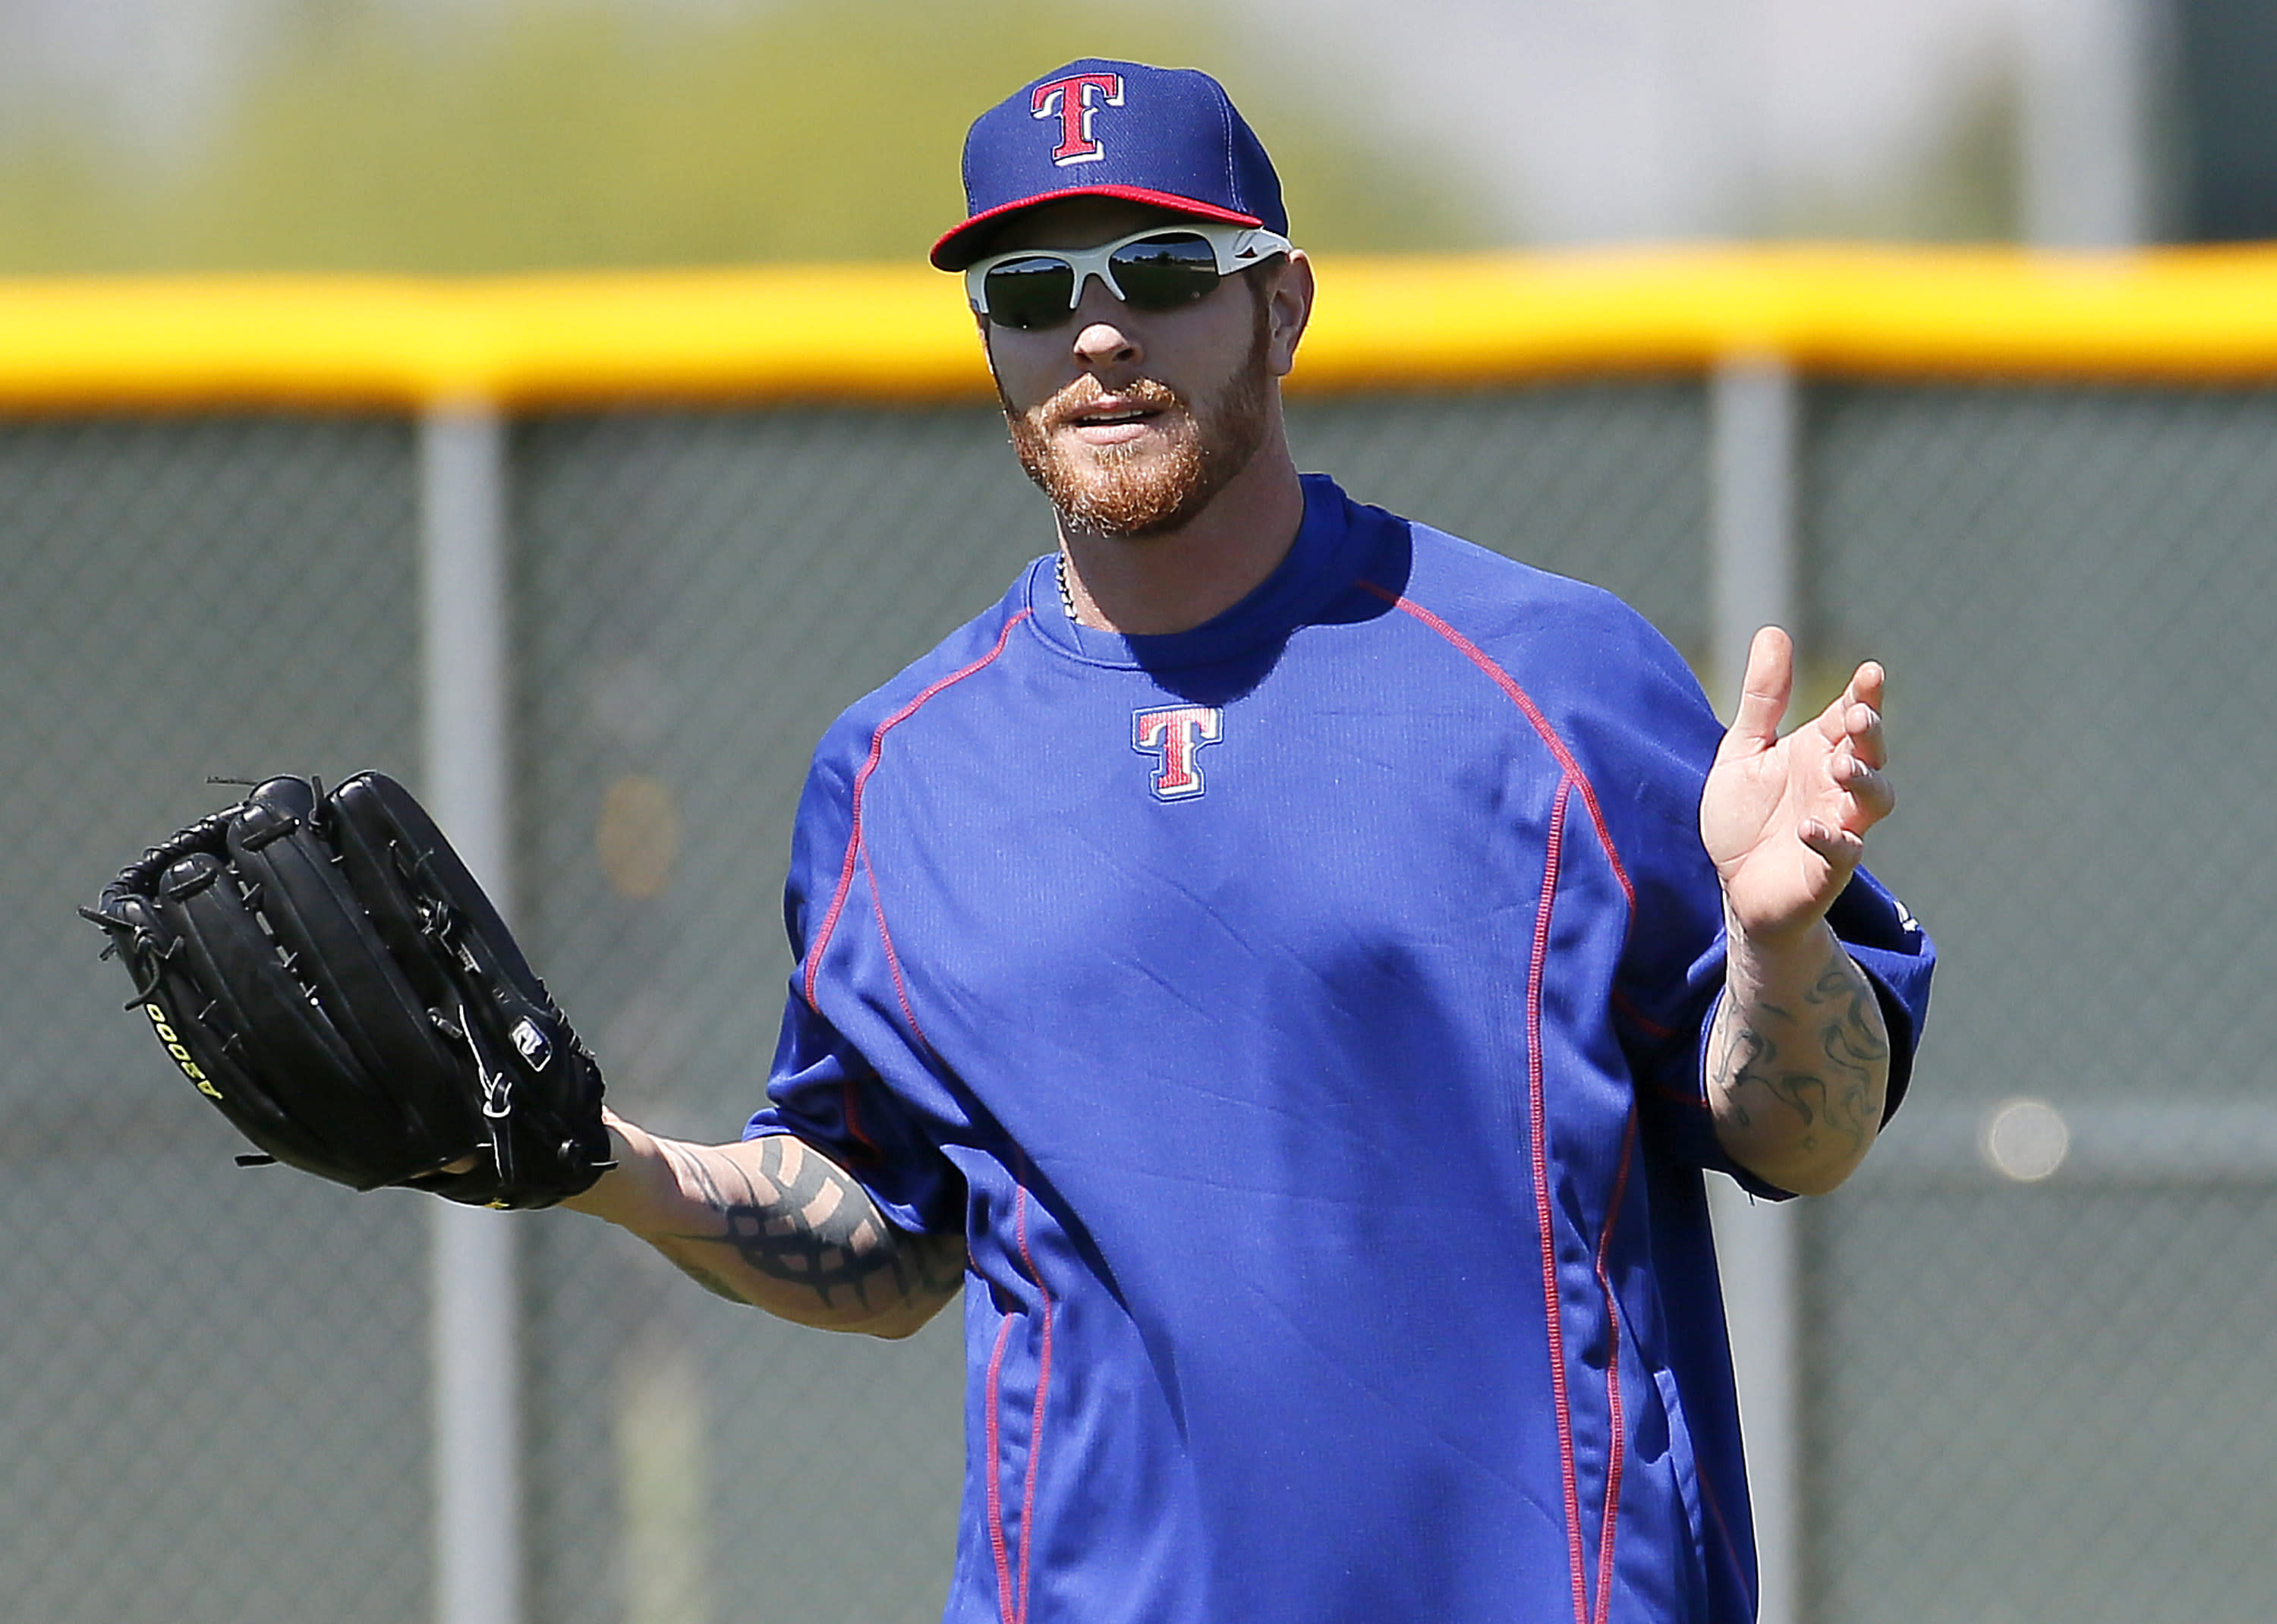 Hamilton plays 1st extended spring training game for Rangers